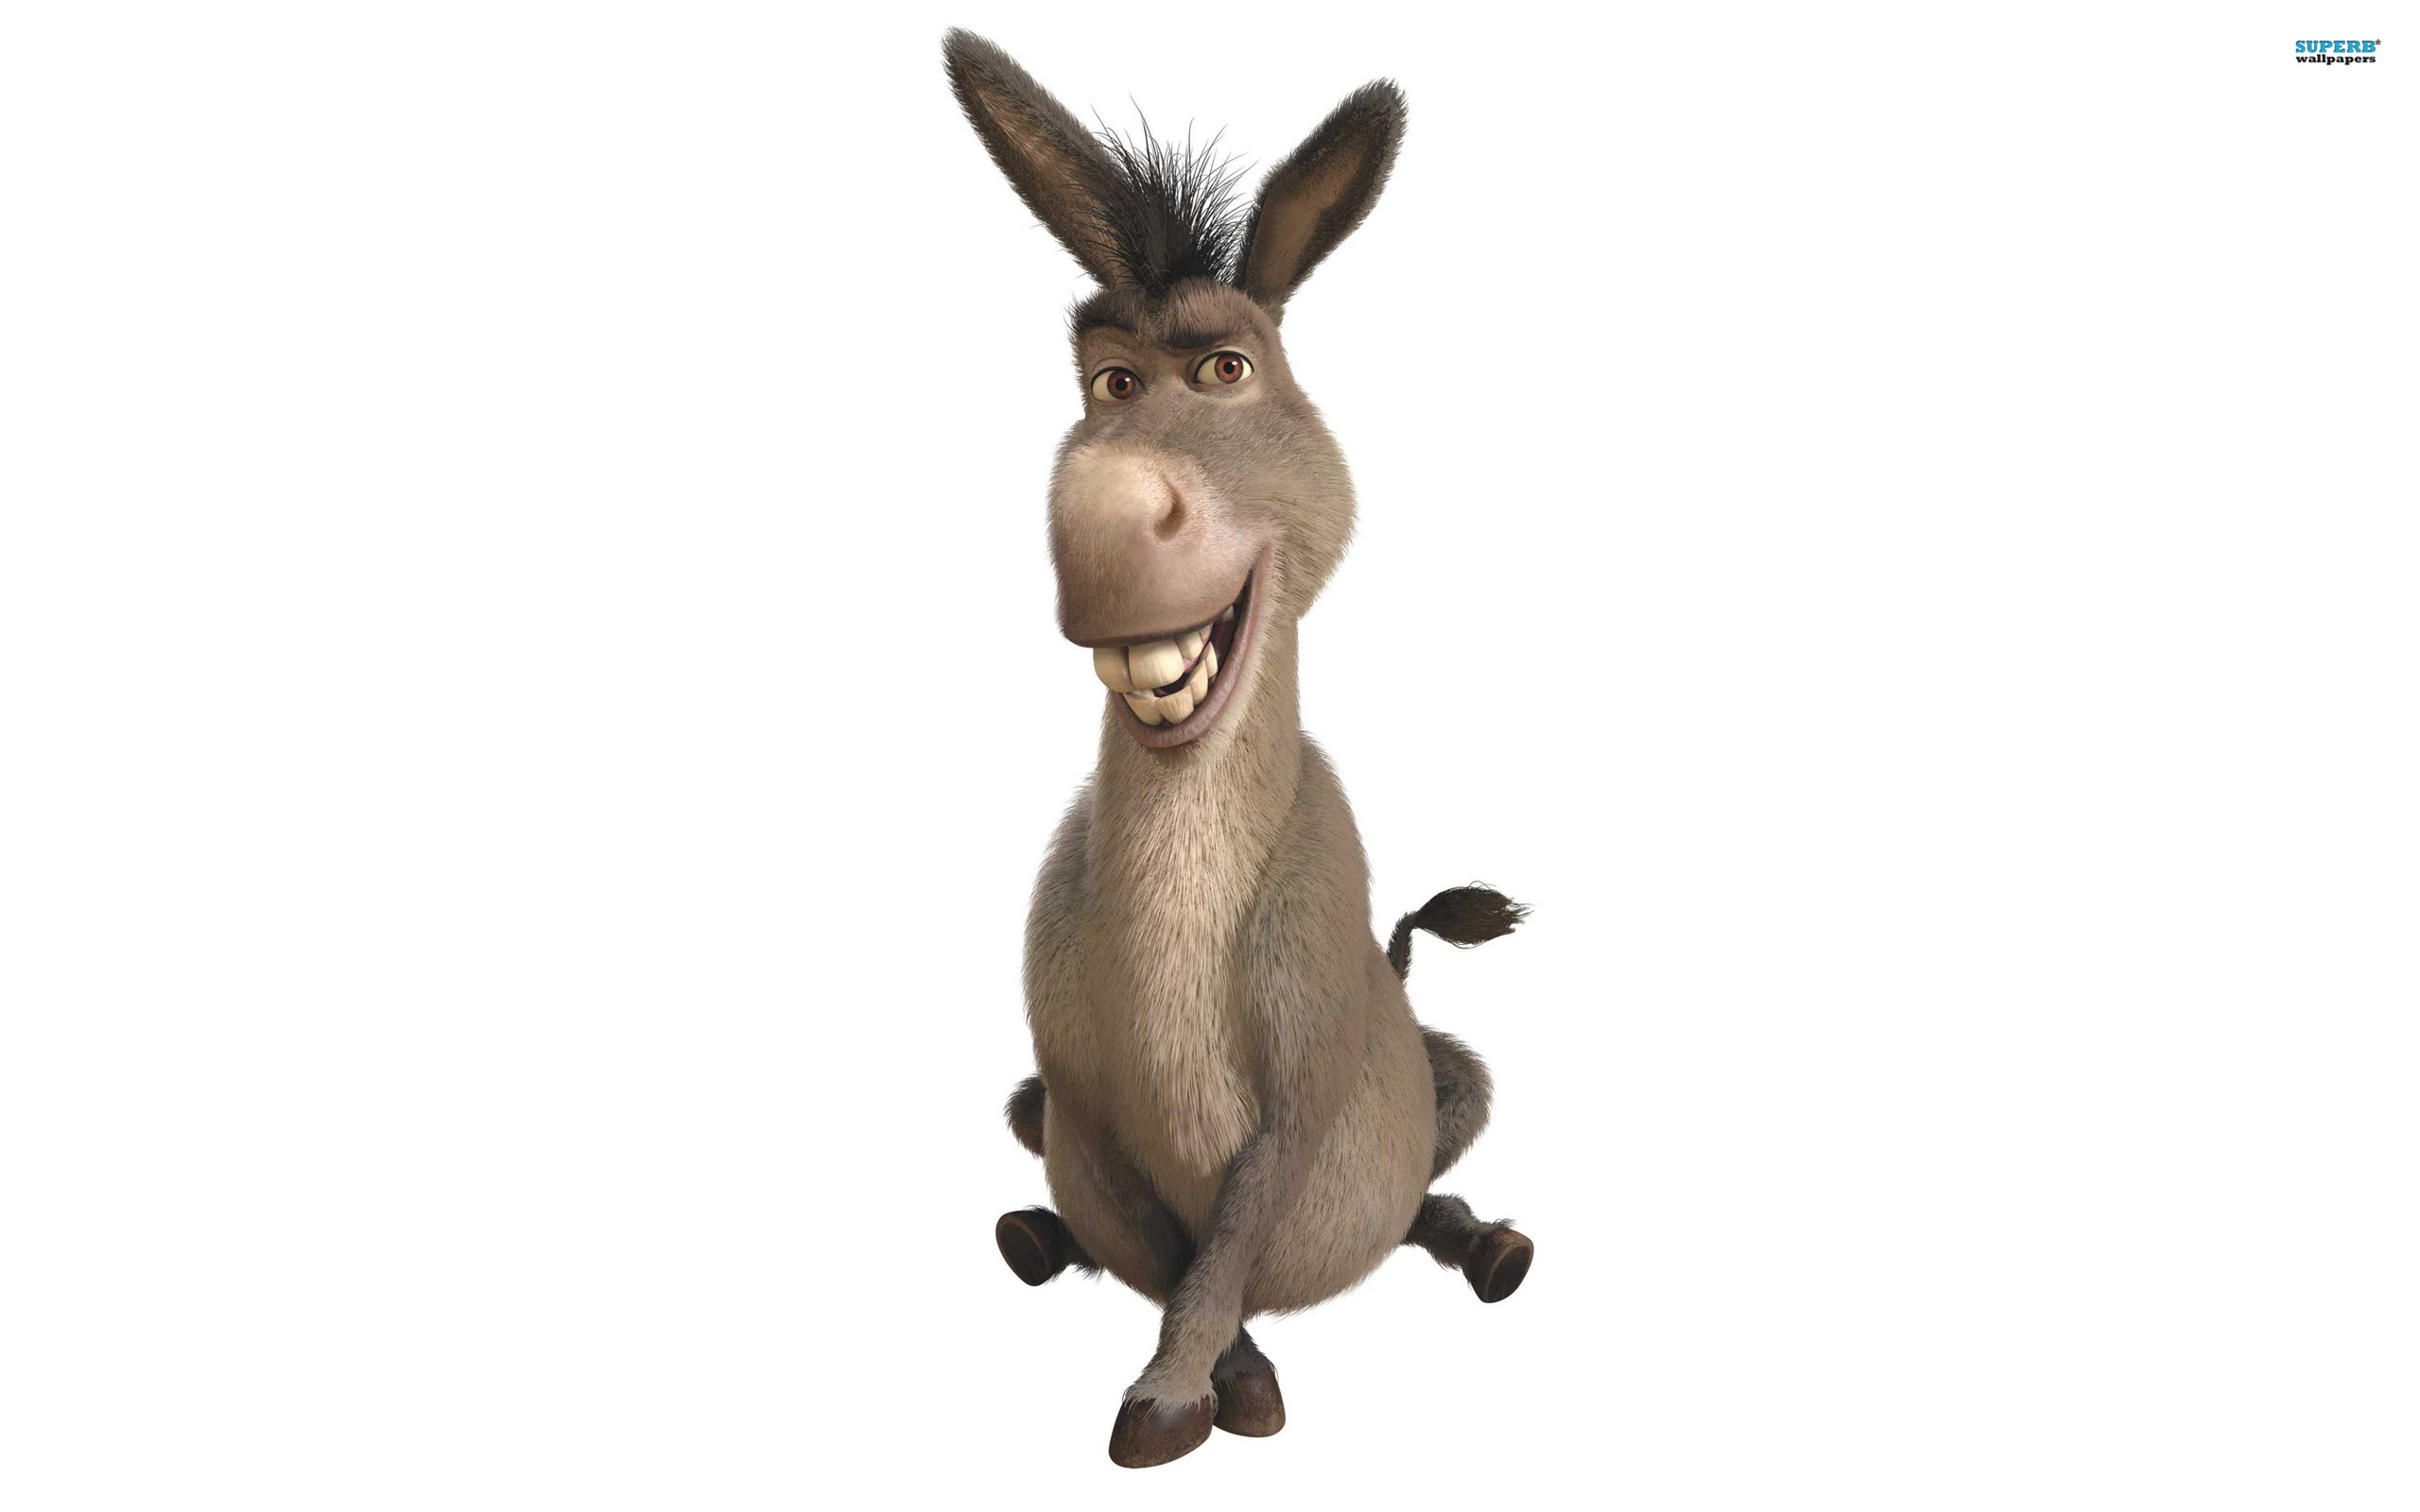 Donkey Cartoon Images